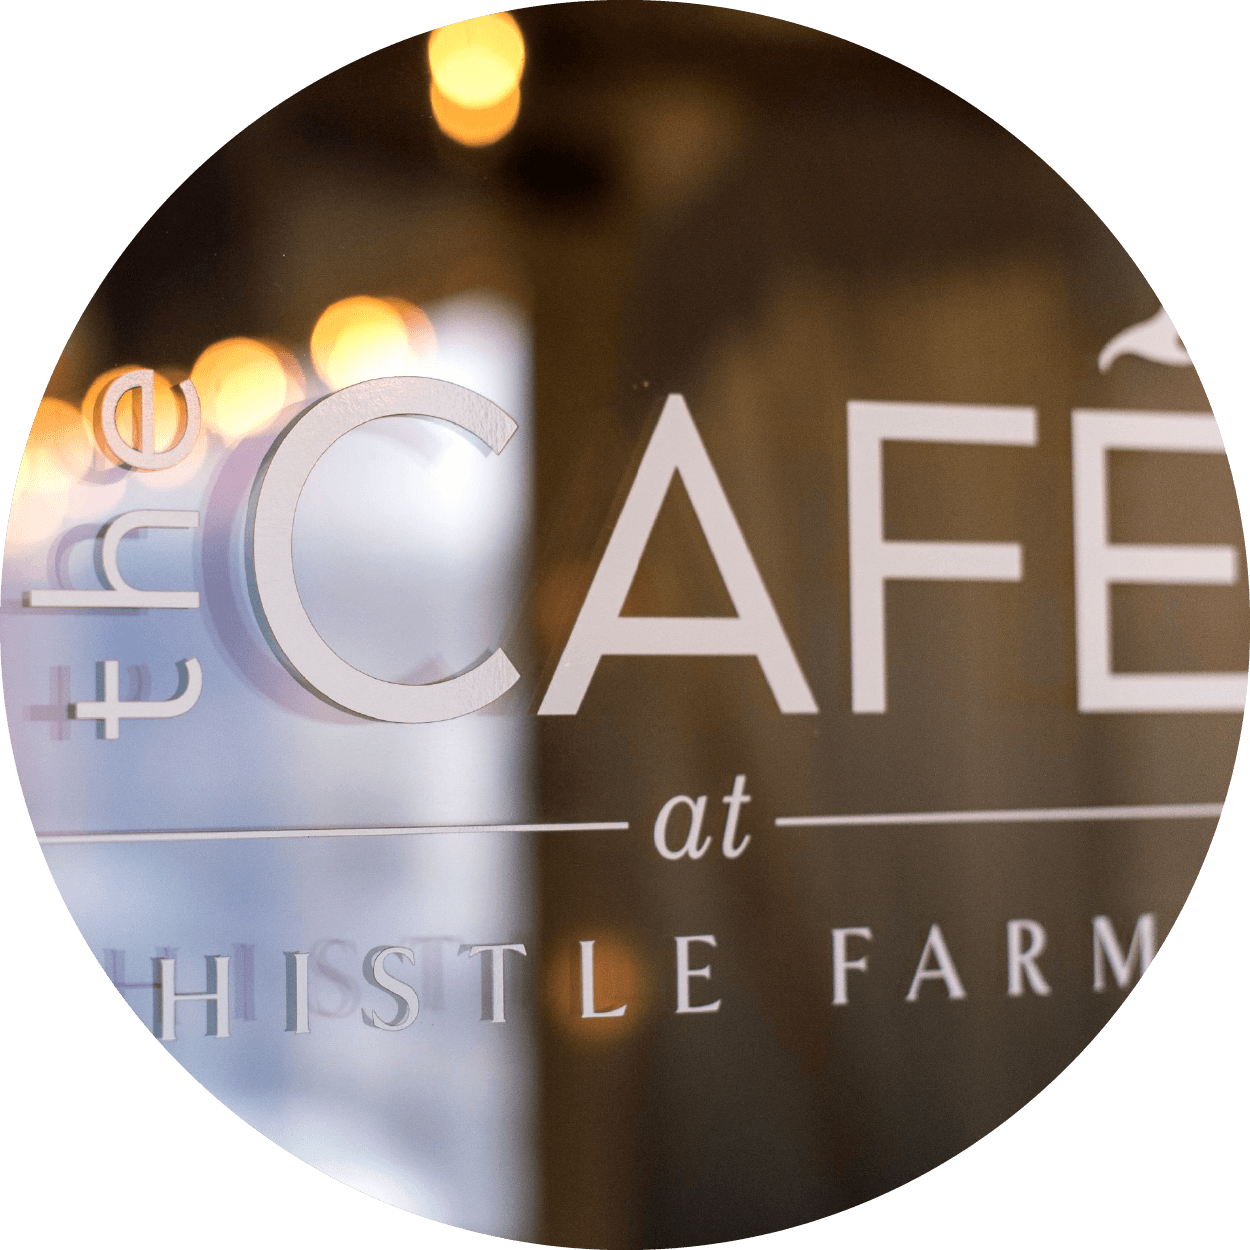 files/The-Cafe-at-Thistle-Farms.png